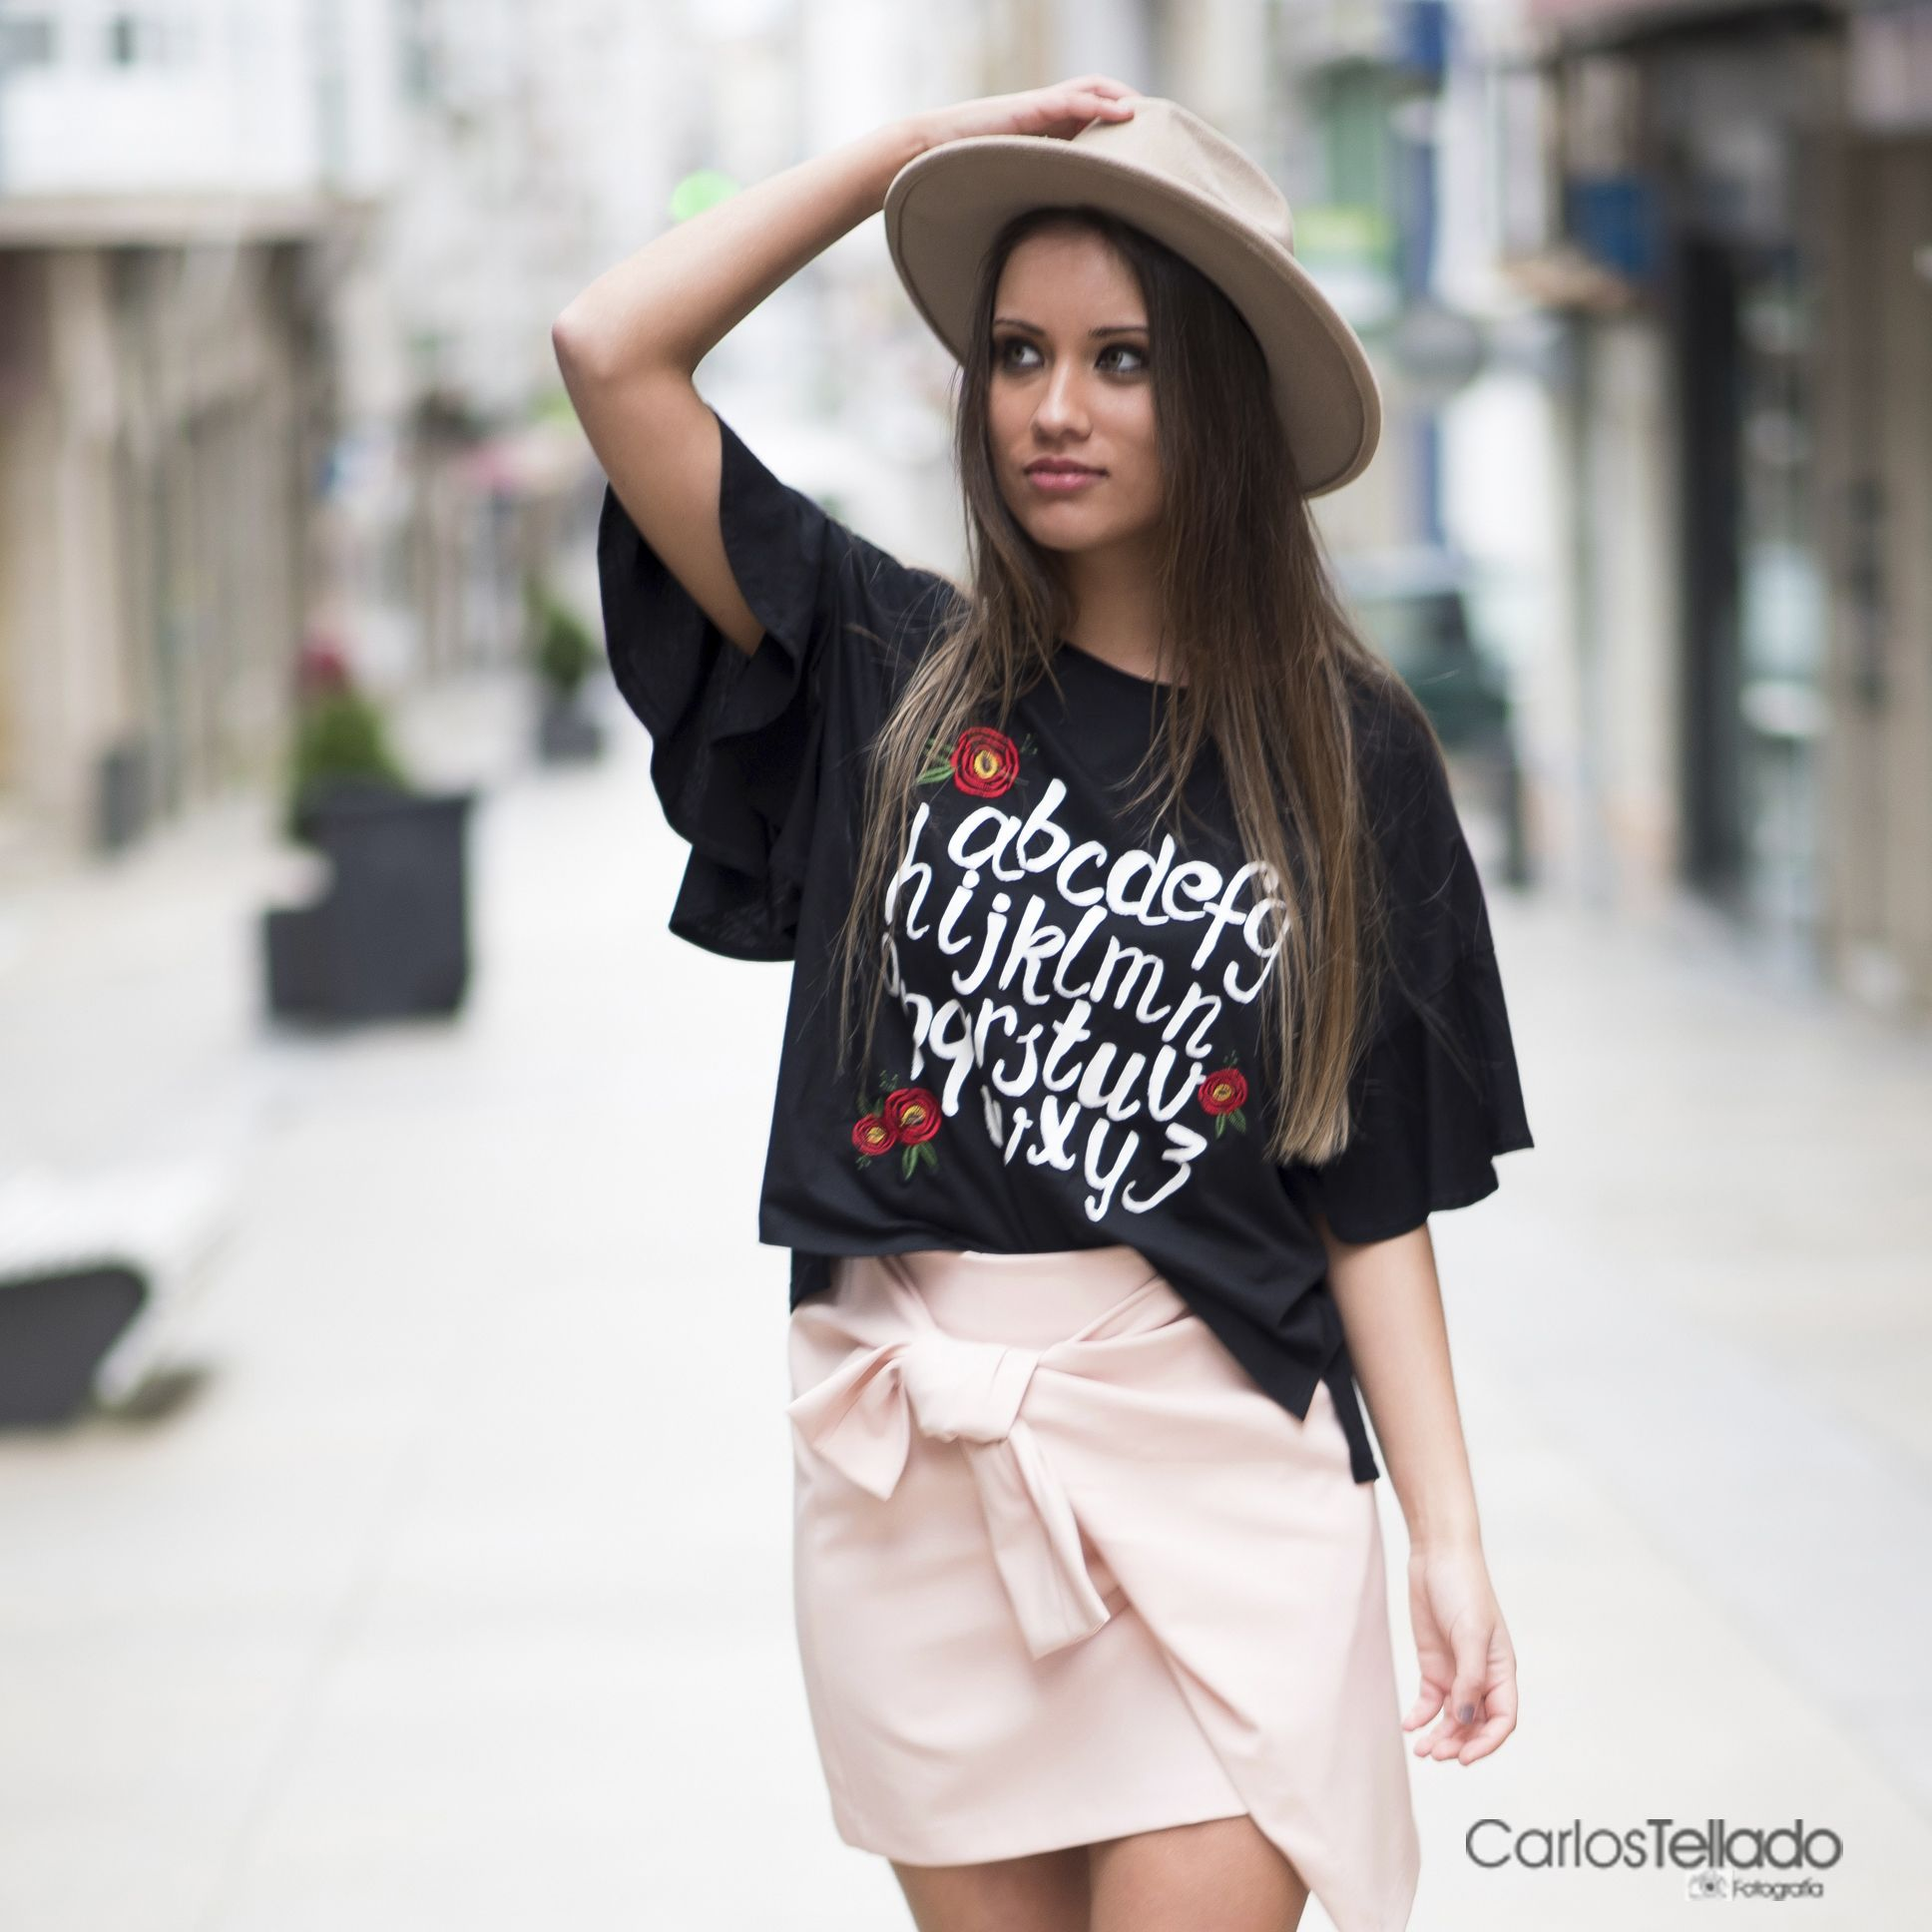 T Shirt With Ruffles And Knotted Mini Skirt Pink Mini Skirt Printed T Shirt Look Camiseta Con Volantes Y Falda Con Tiendas Online De Ropa Ropa De Mujer Ropa